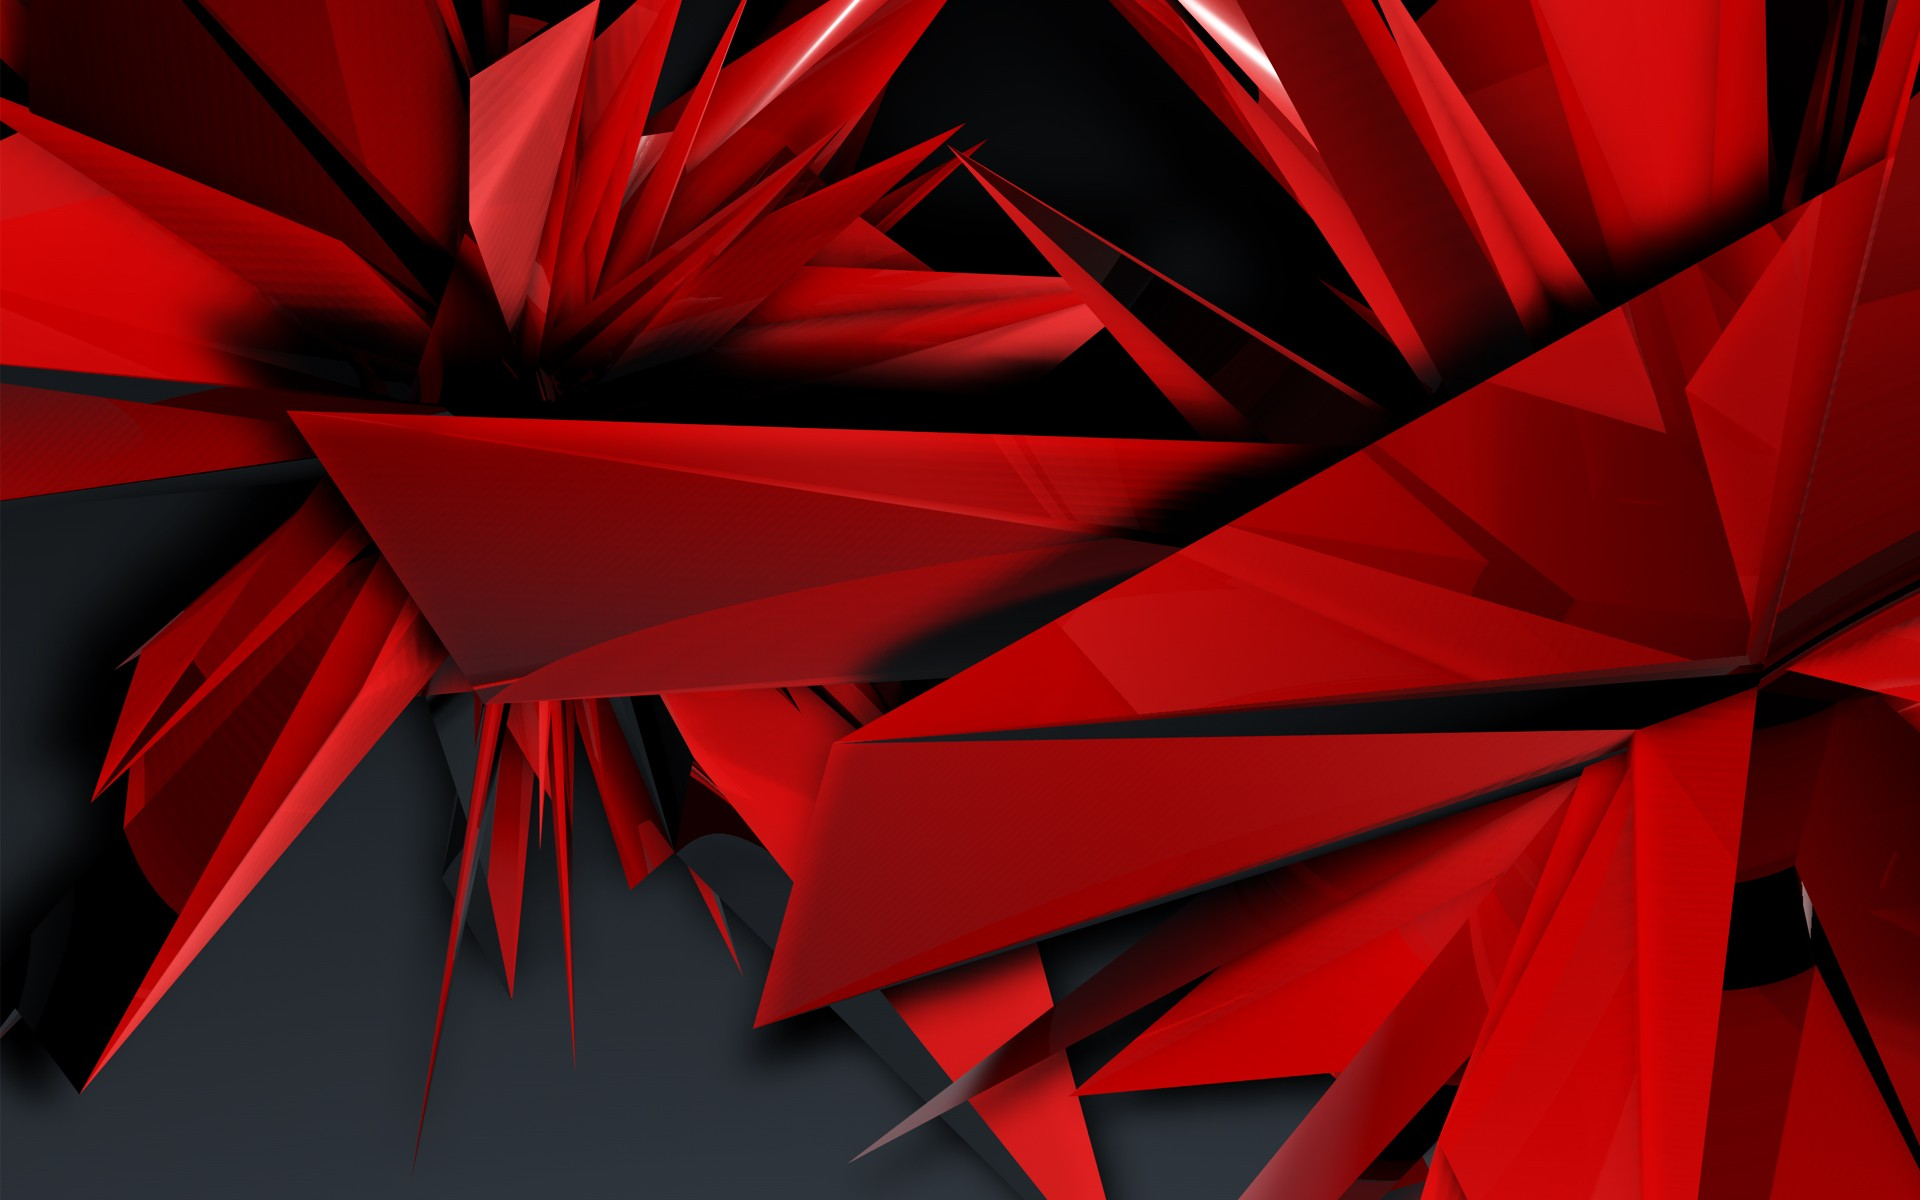 Red abstract hd wallpaper wallpapersafari - Black red abstract wallpaper ...